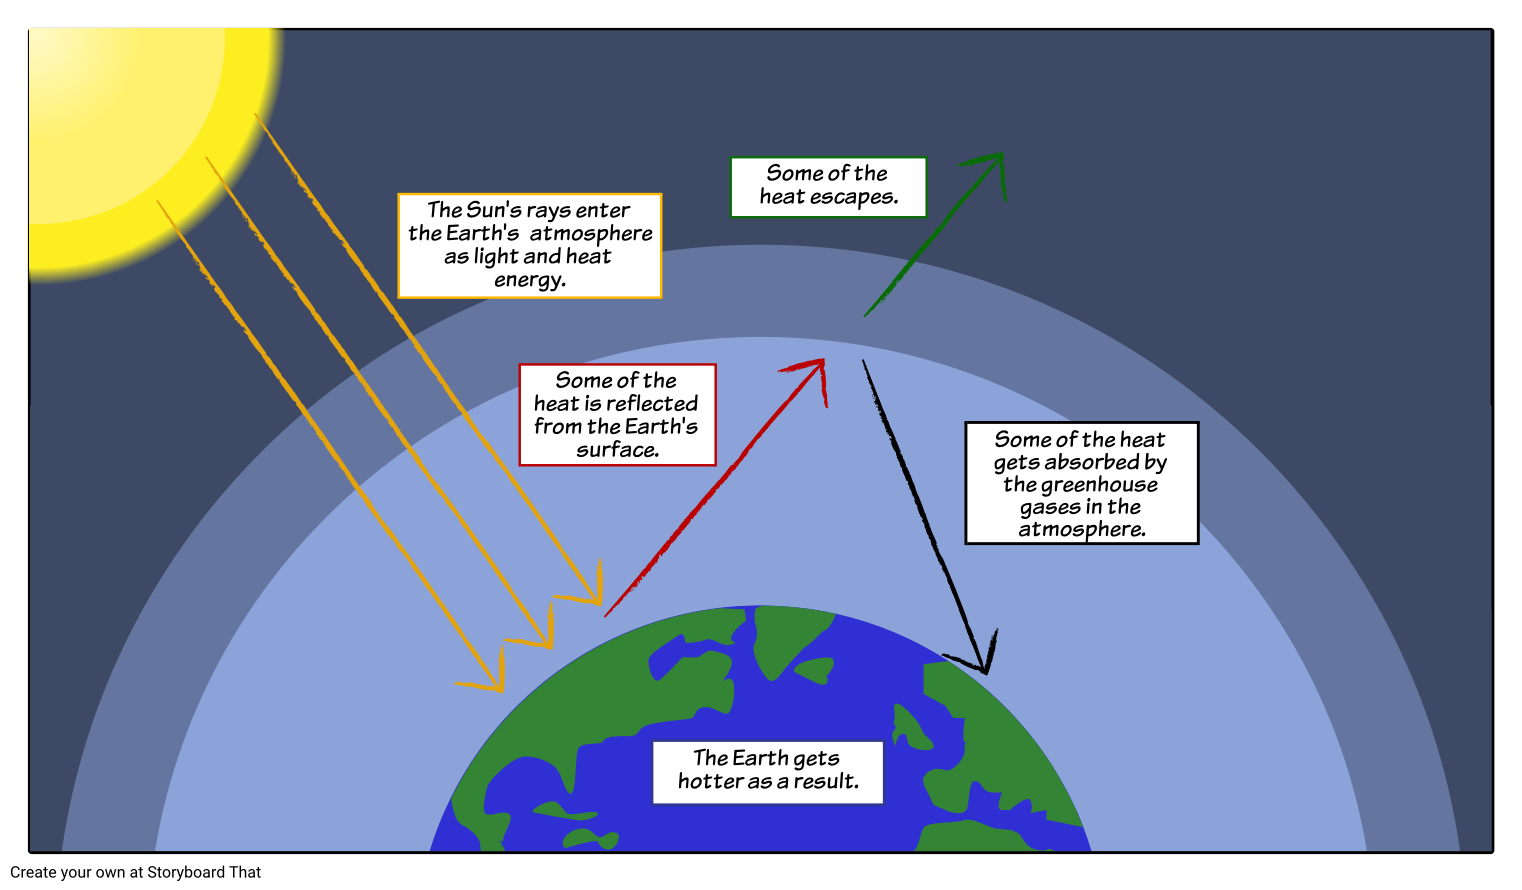 medium resolution of global warming the greenhouse effect model storyboard that is a great way for students to combine images and text in a creative way to produce quick and